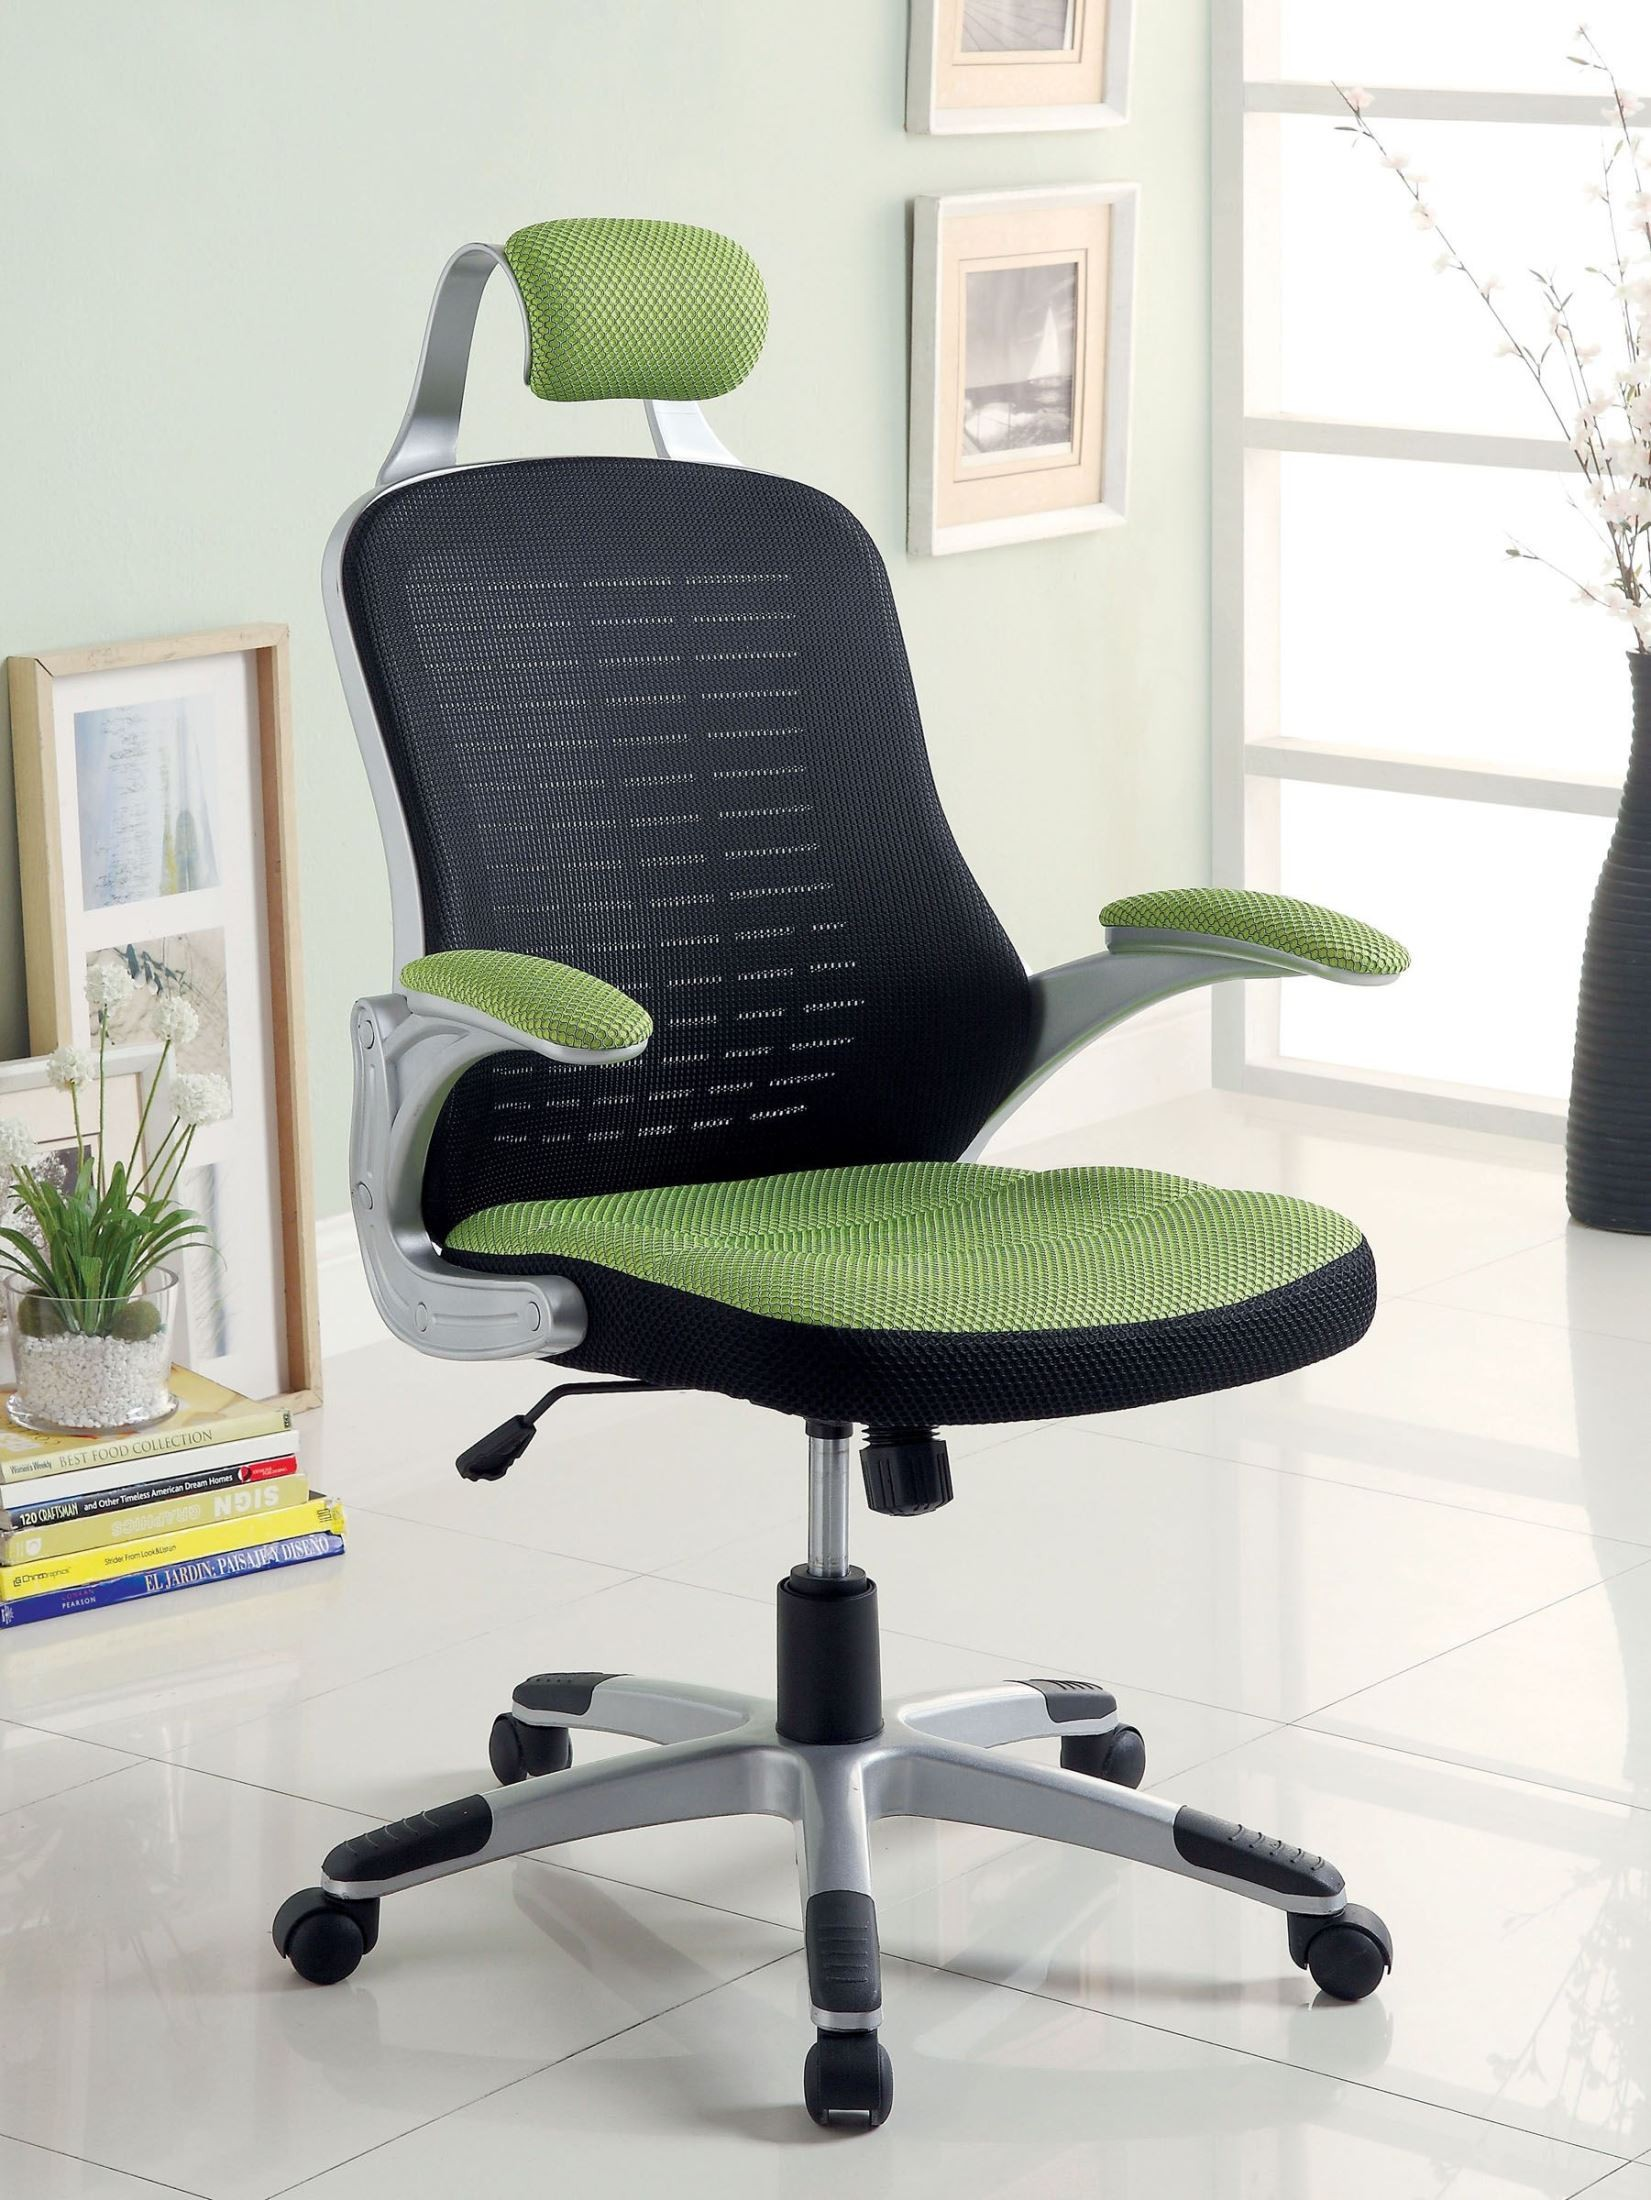 Cesta Green And Black Adjustable Height Office Chair From